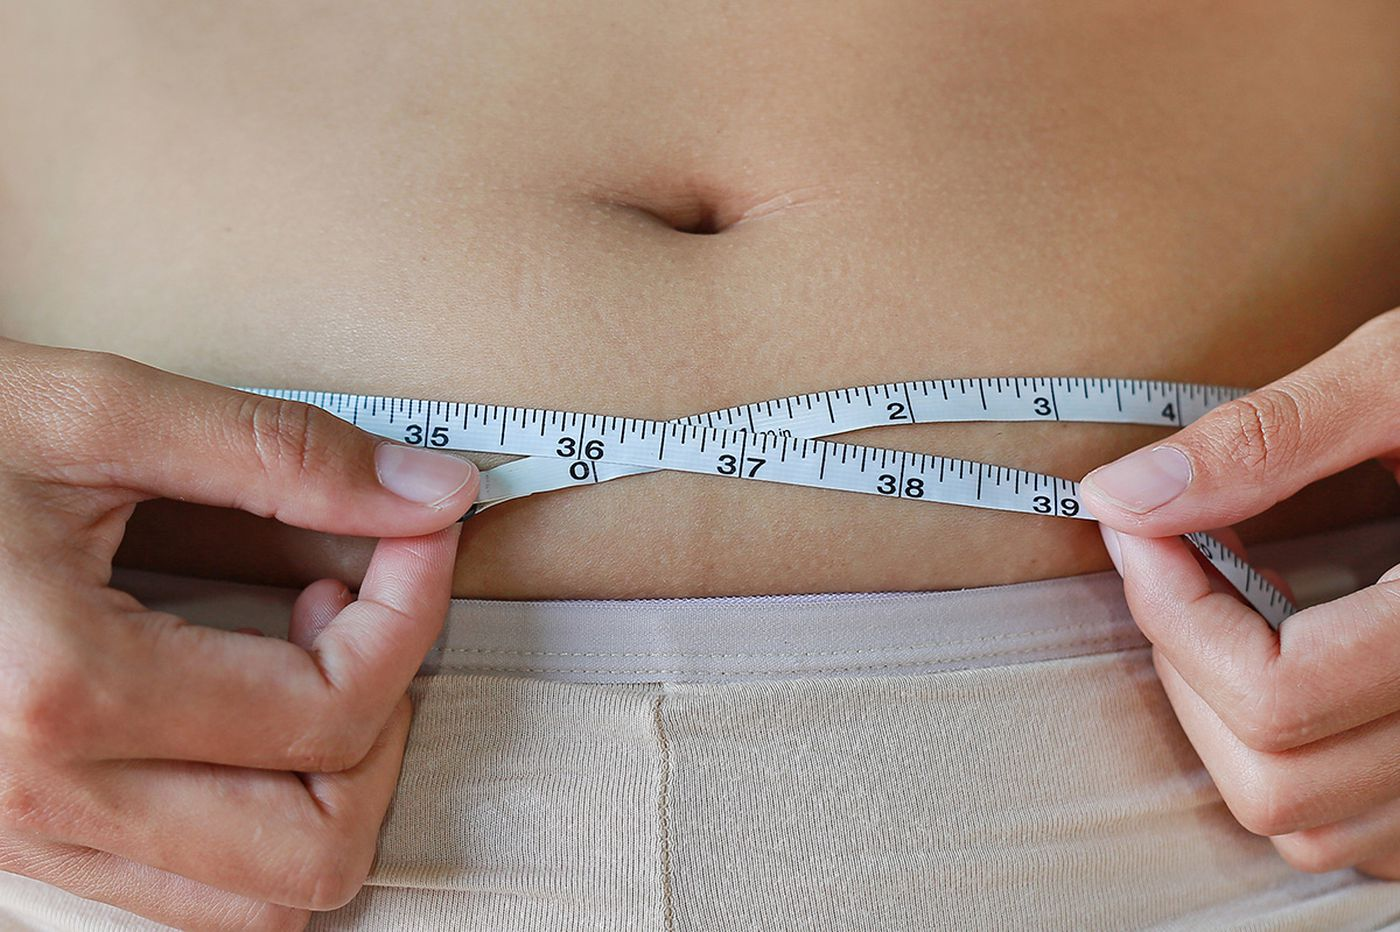 Q&A: How does bariatric surgery affect metabolic syndrome?